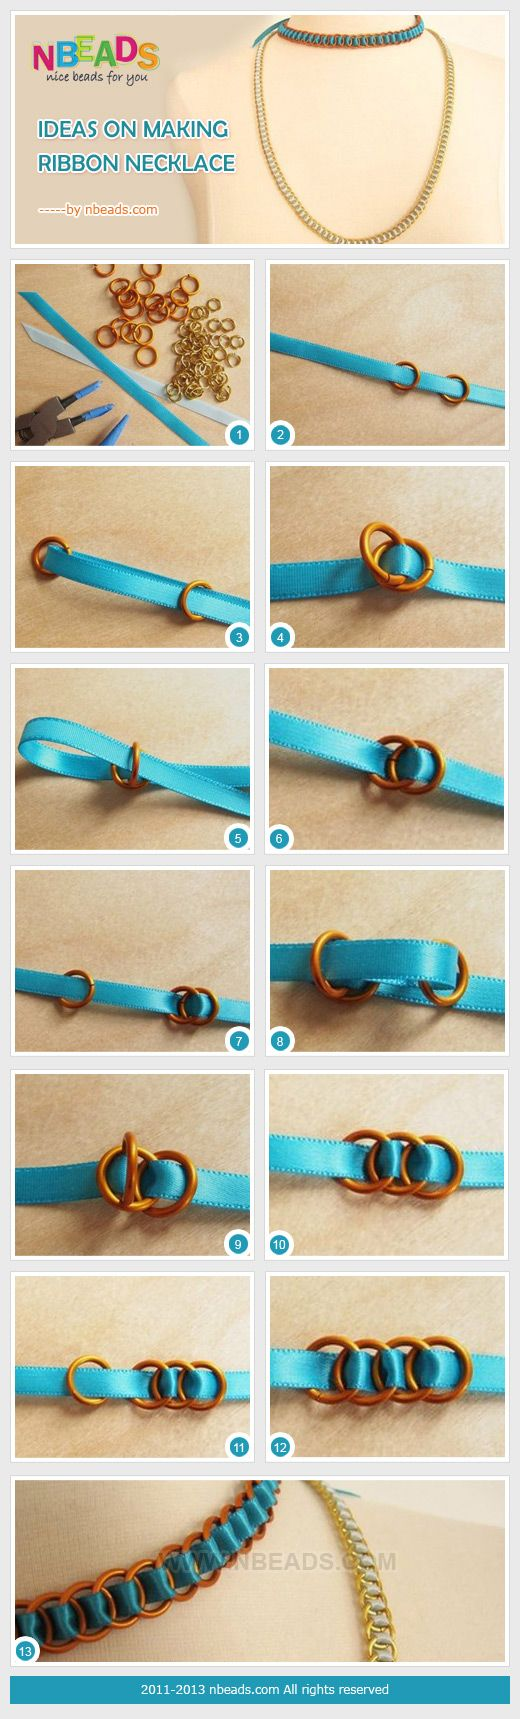 Ideas on making ribbon necklace